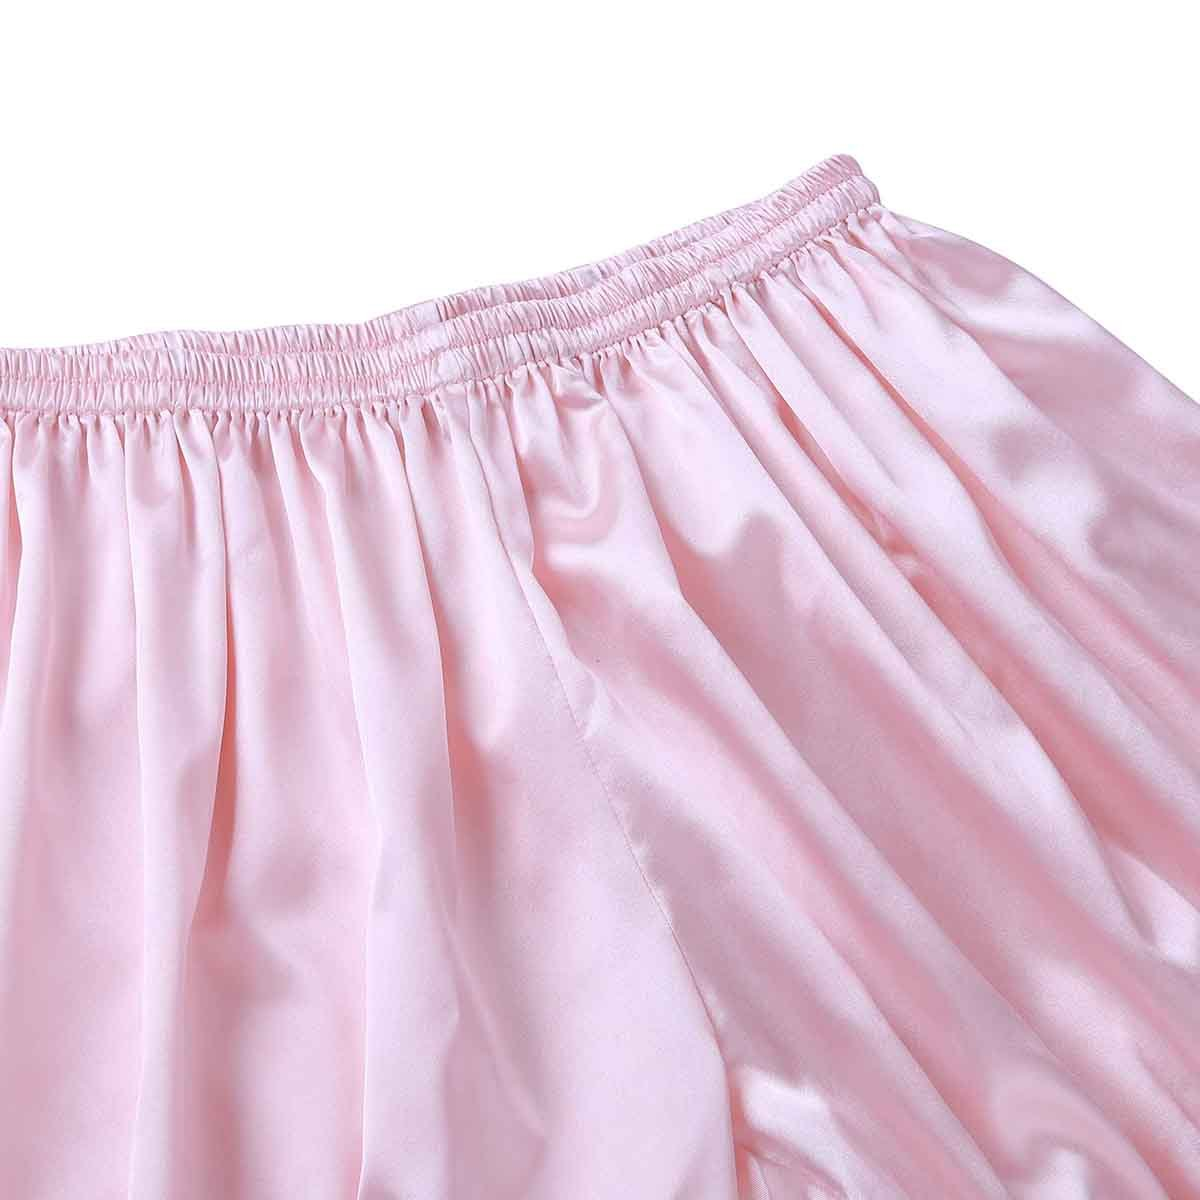 inlzdz Mens Frilly Shiny Satin Lace Boxer Briefs Bloomers Sissy Panties Knickers Underwear